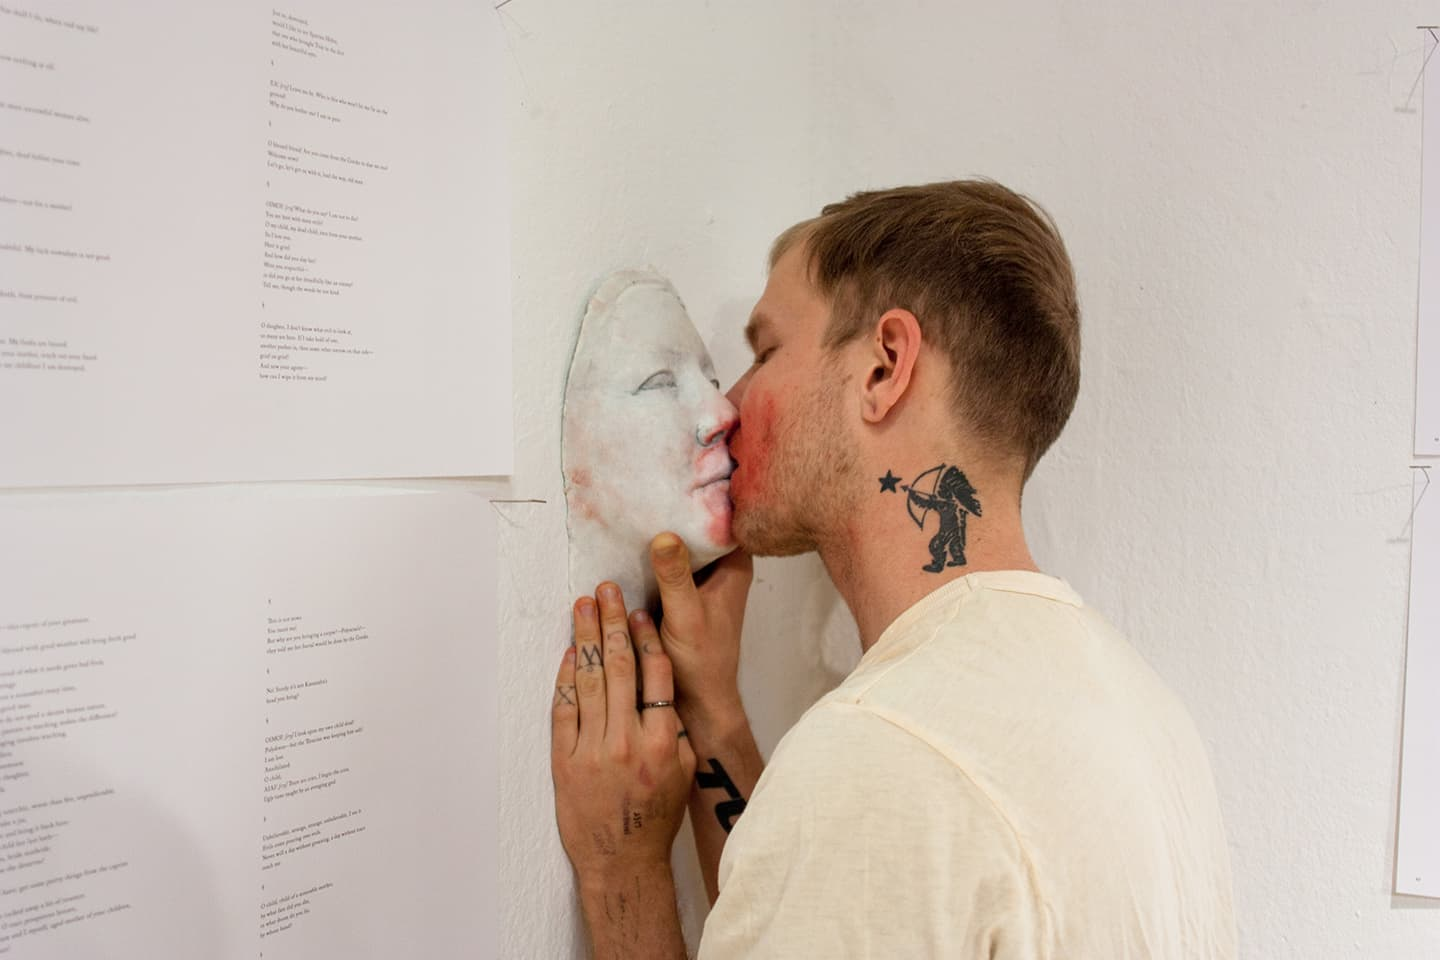 A photograph of a blond man with a shaved head holding a plaster sculpture of Johanna Hedva's face against a wall and kissing it. His eyes are closed. On his neck is a tattoo of a Native American archer pointing an arrow at a star. His fingers and wrists are tattooed with letters and wavering lines, and he wears a ring on his left index finger. Pinned to the white wall around him are pages from the script of Motherload